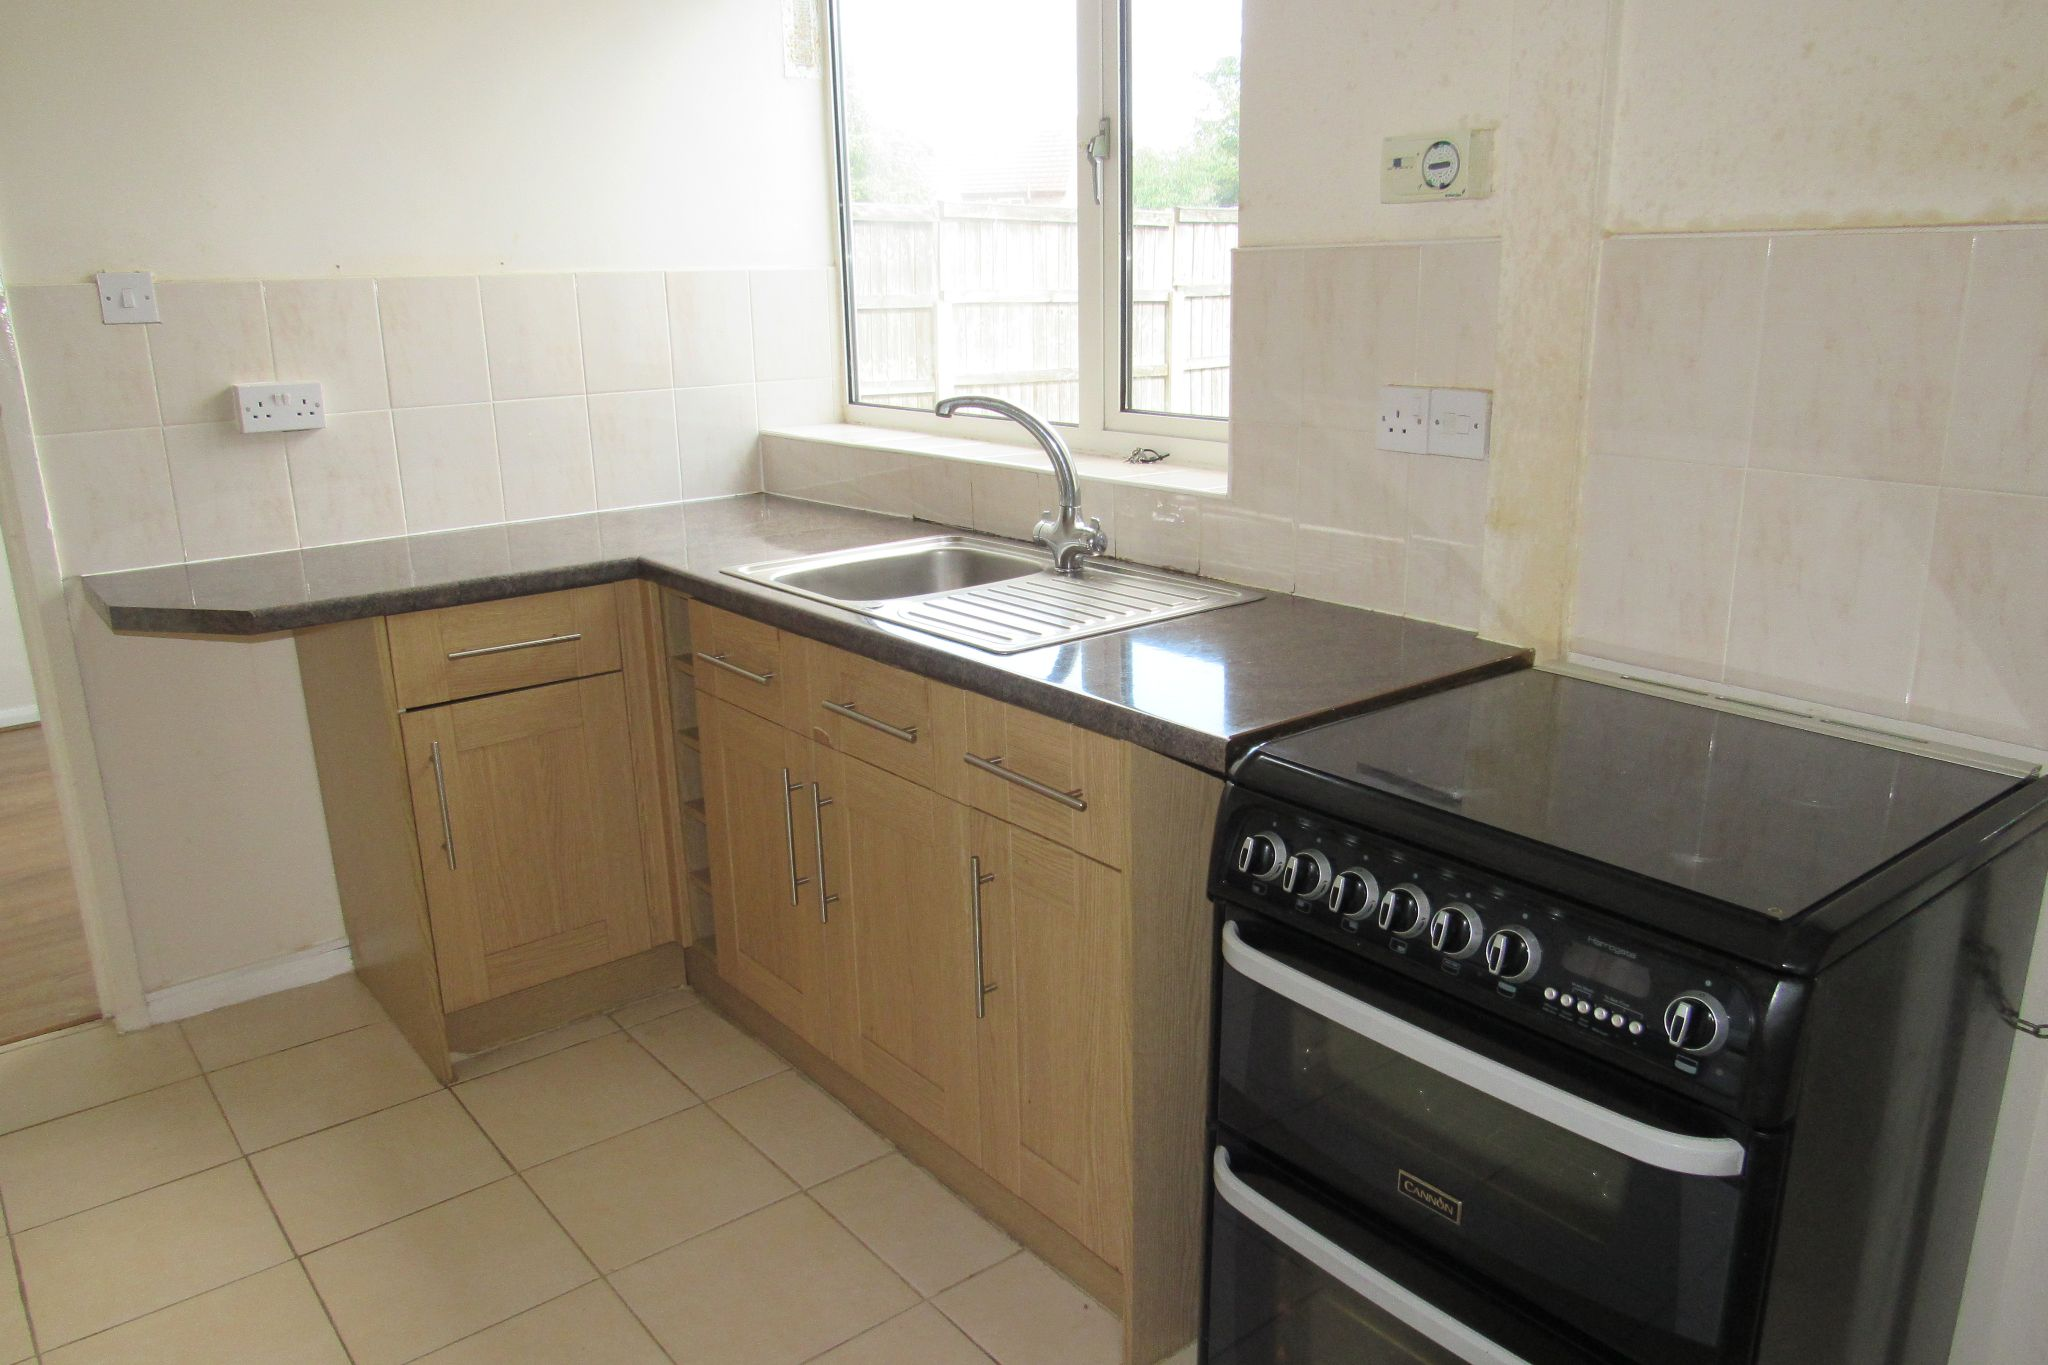 3 bedroom mid terraced house Sale Agreed in Manchester - Photograph 8.